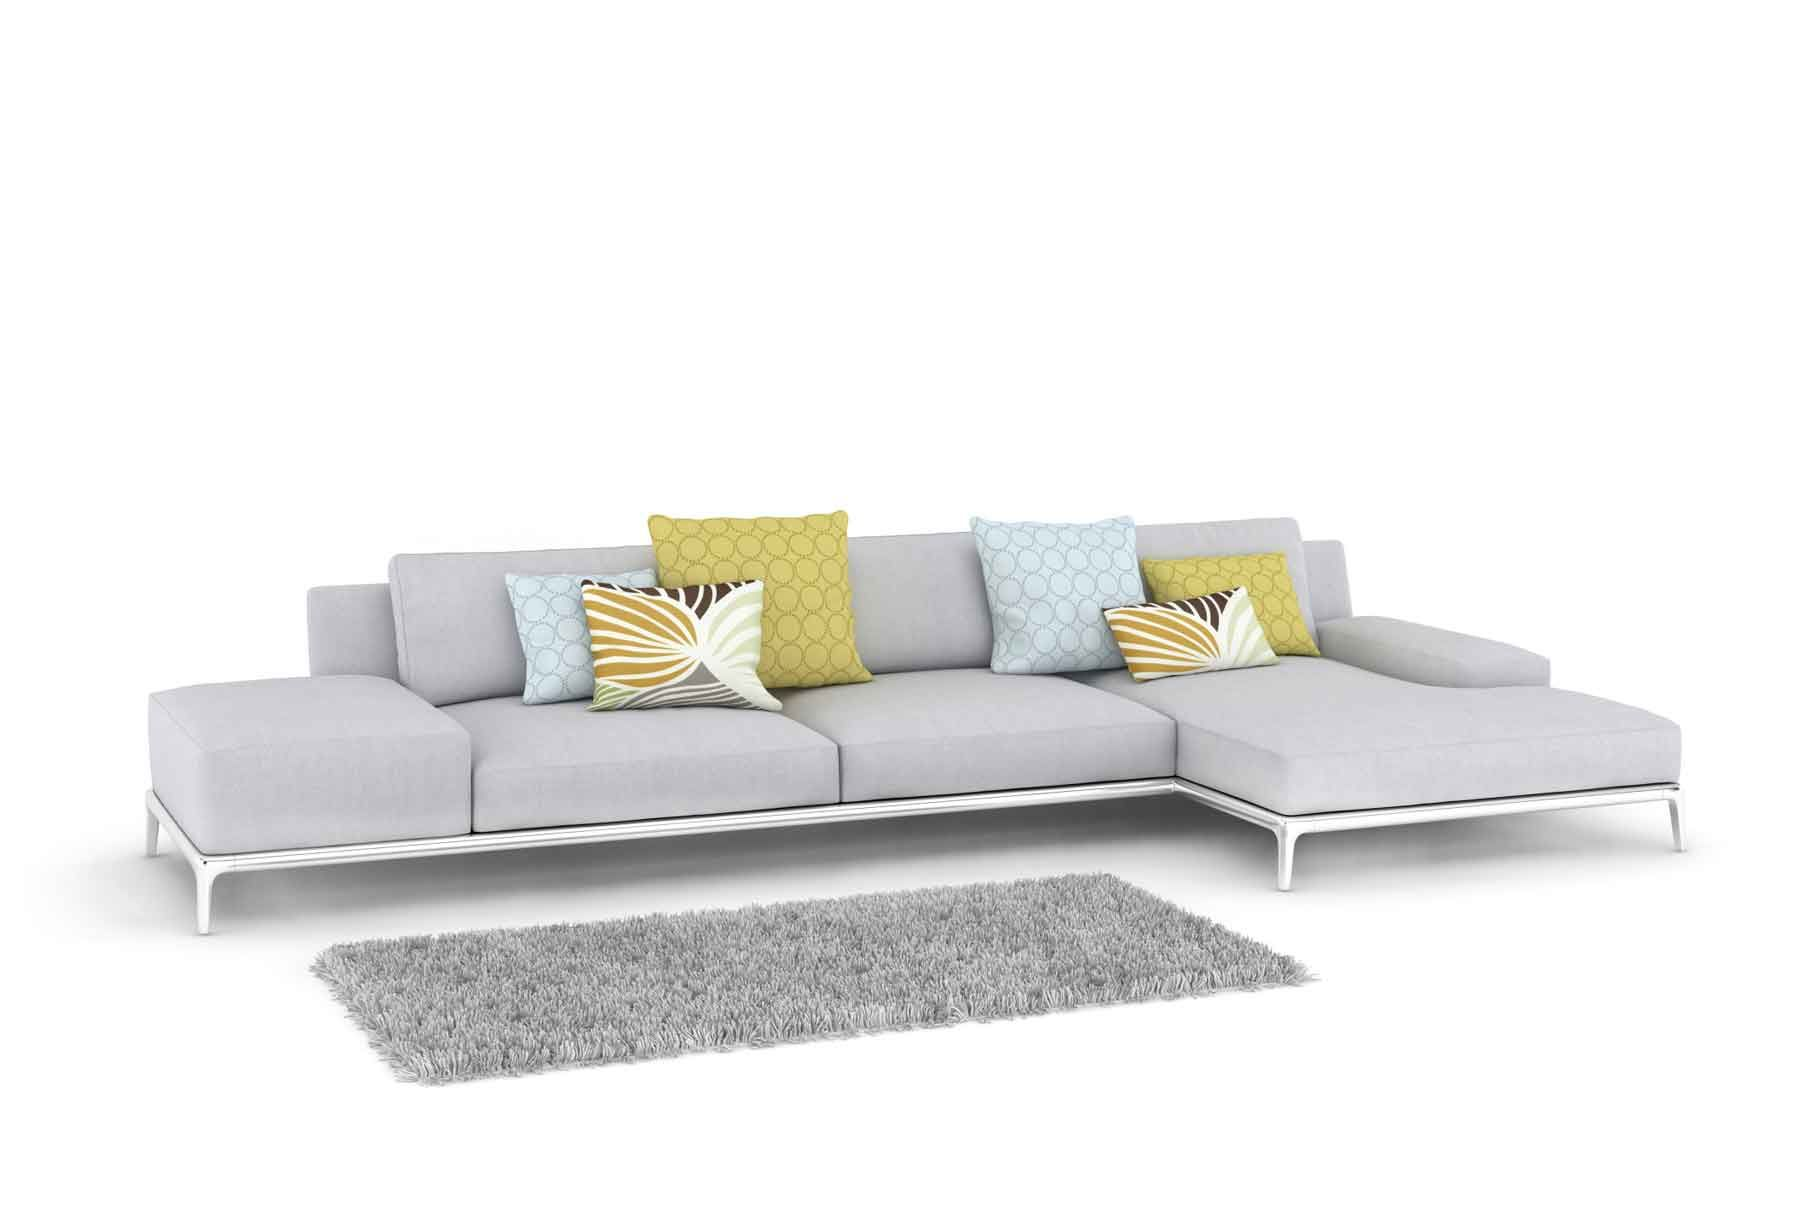 Sof de color gris para el sal n hogarmania - Decoracion cojines sofa ...